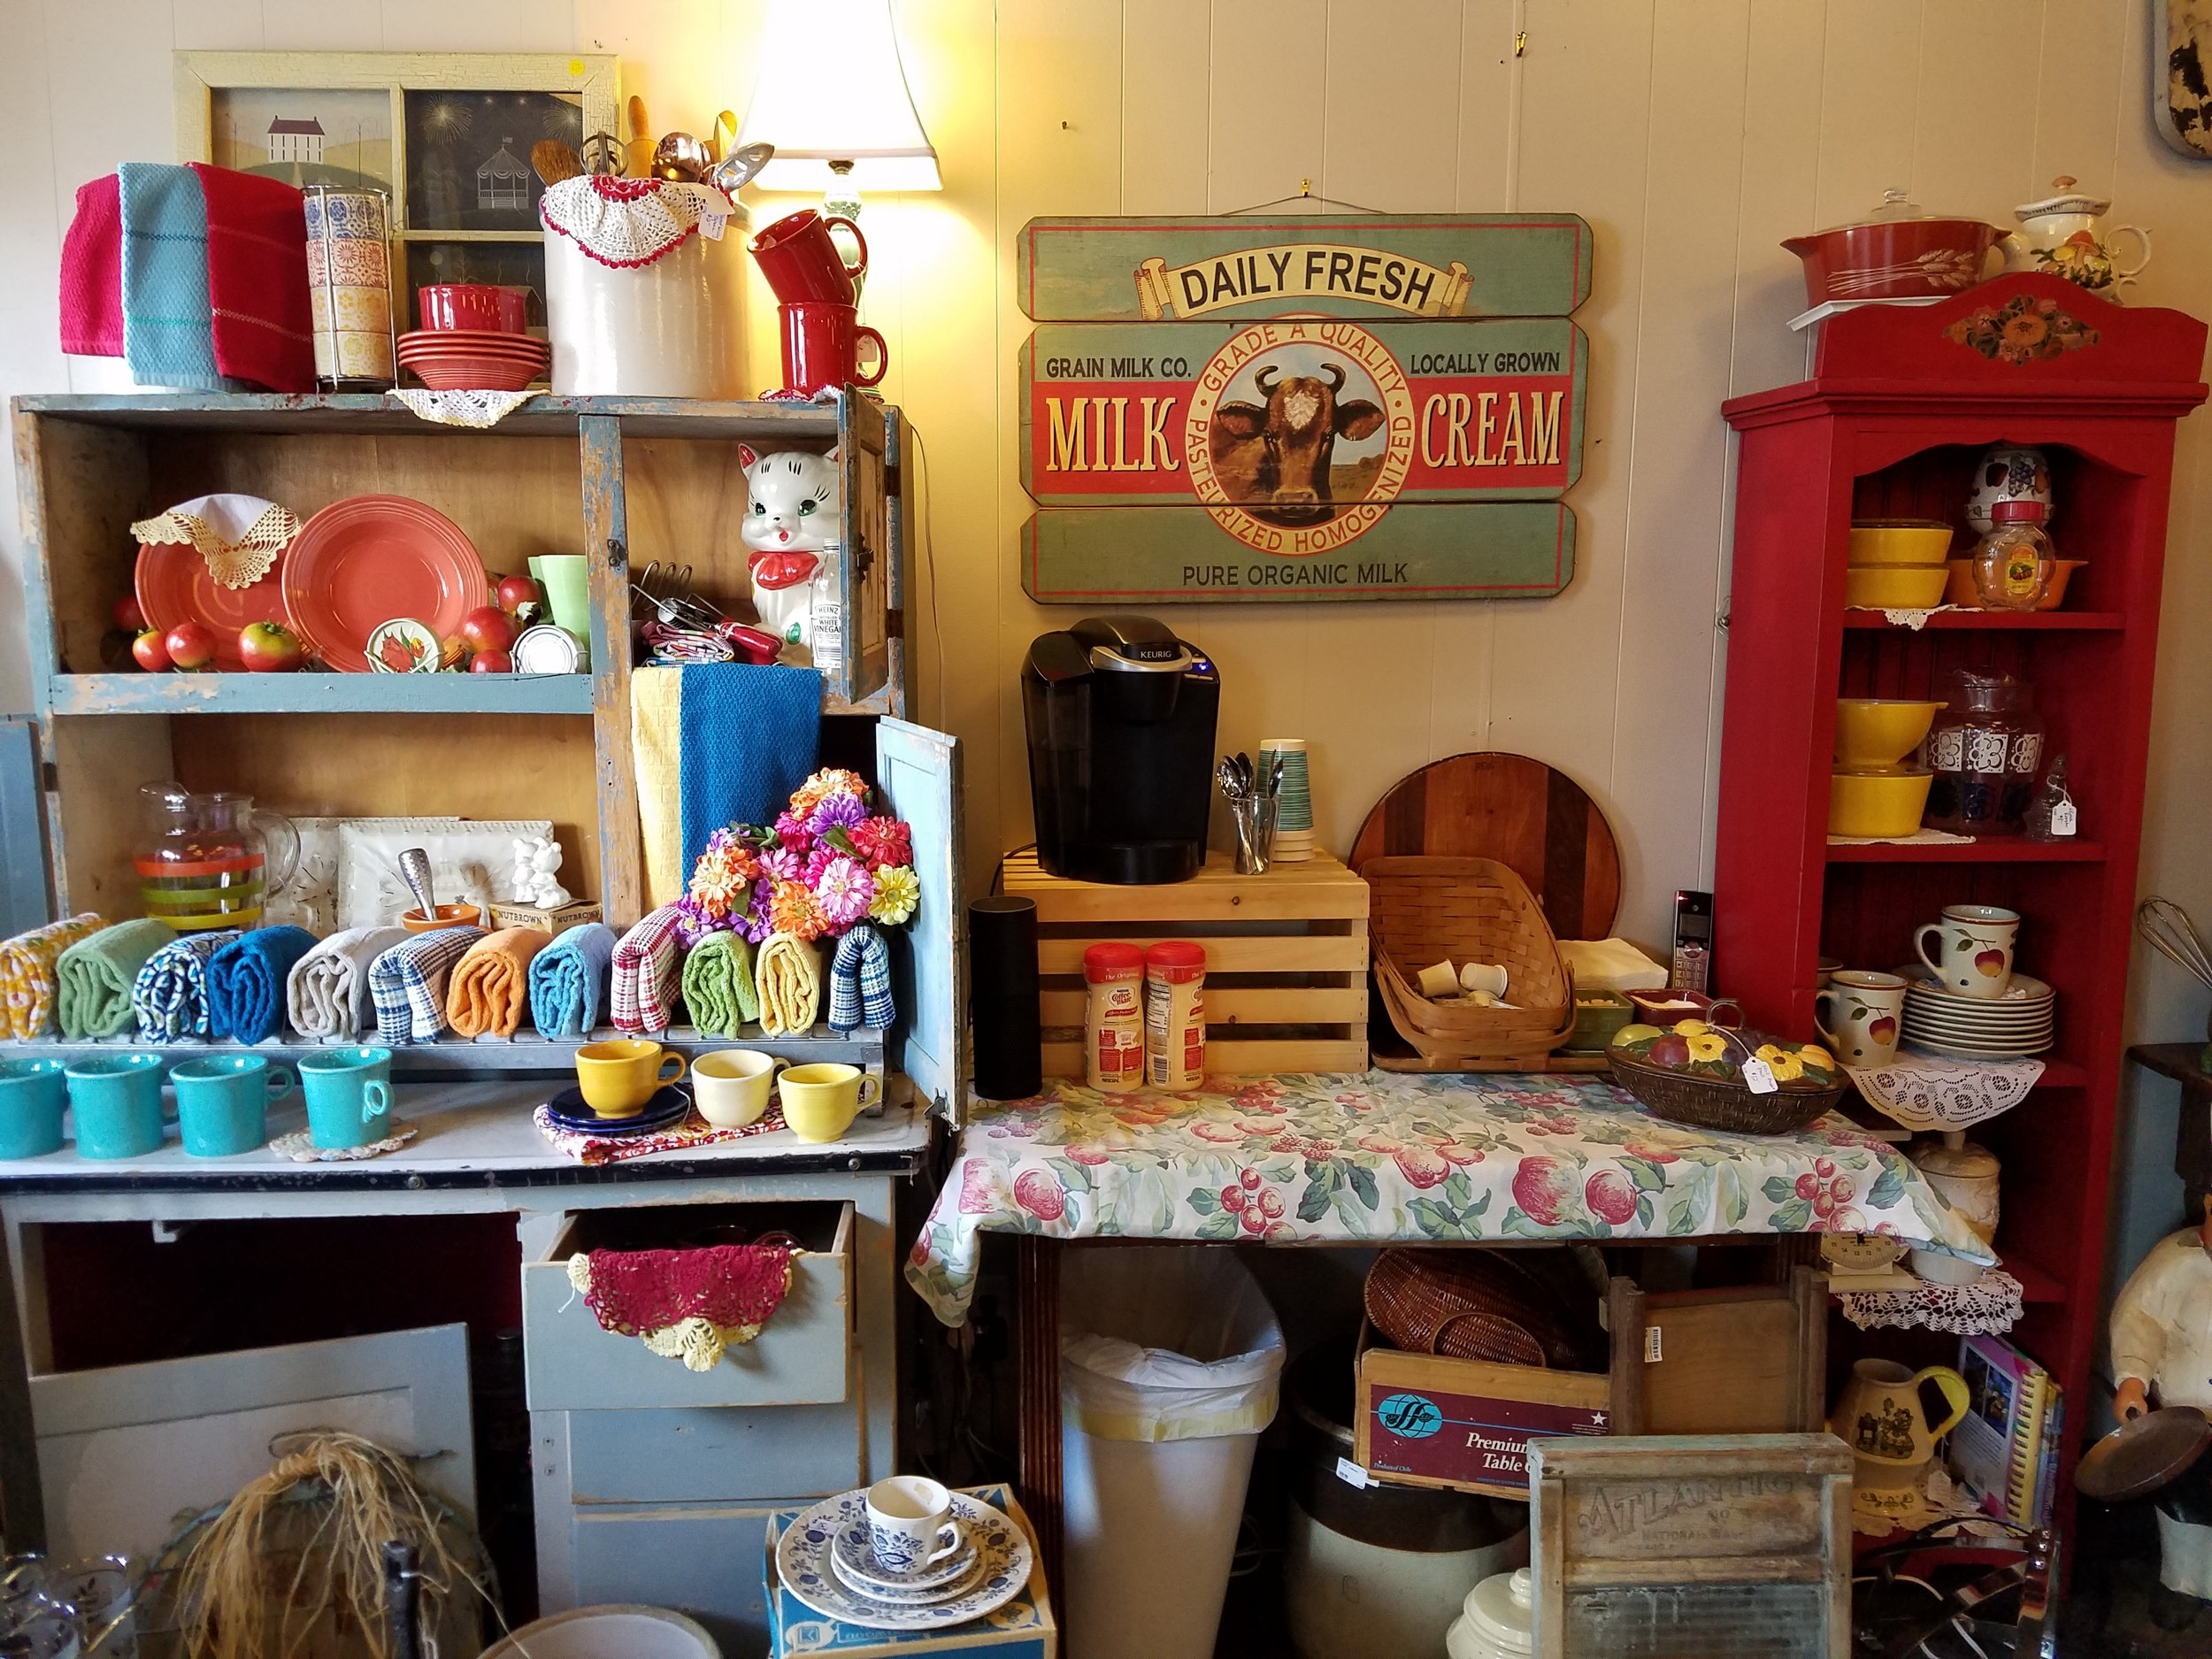 Emma Jean's Relics - 930 5th Ave, (412) 339-3999